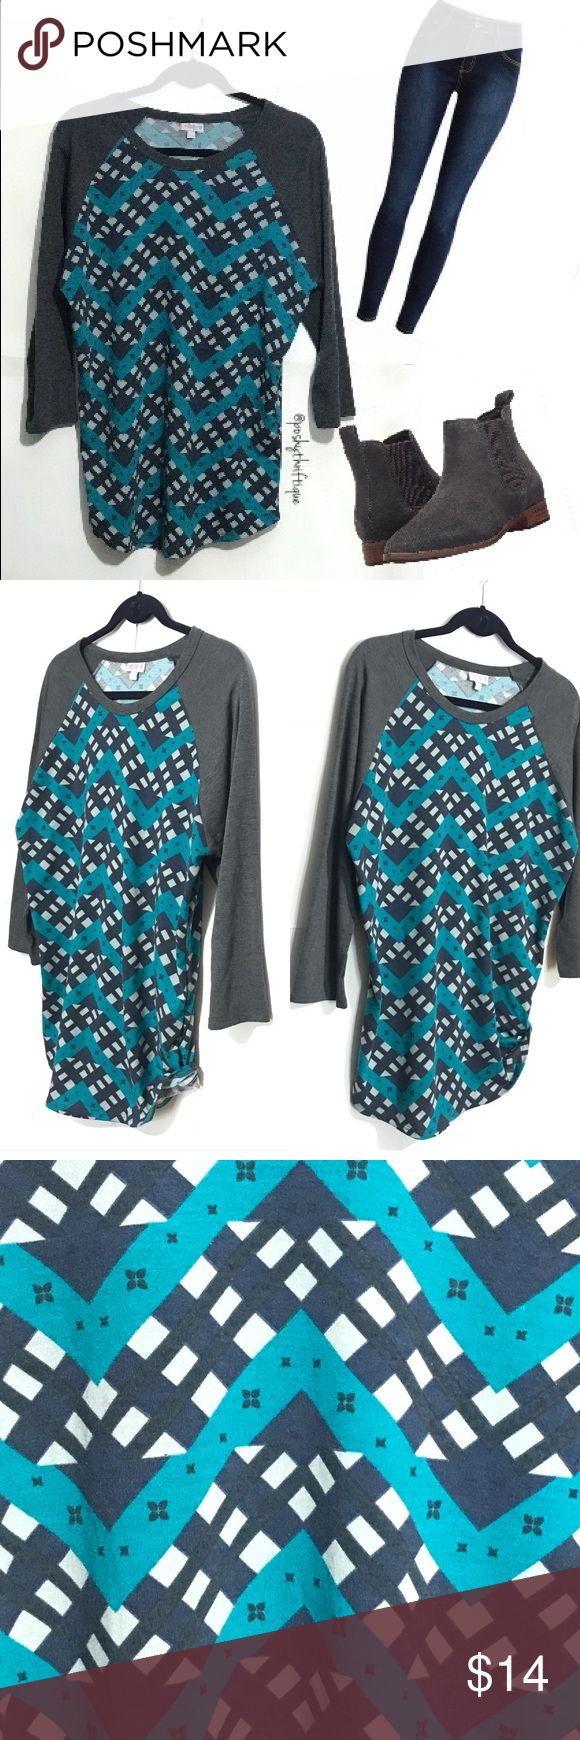 "Lularoe Womens Randy 3/4 Sleeve Mulitprint Shirt SIZE: large  STYLE: relaxed / casual /movie night / Date Night  BRAND: lularoe MATERIAL: 87% polyester 10% rayon 3 % spandex  COLOR:multicolor gray / blue / white  MEASUREMENTS:  Length :Approx 28"" Underarm To Underarm : Approx 20"" Bust : Approx 40"" Sleeve : Approx 22"" CONDITION : Great Pre Loved Condition  COUNTRY OF MANUFACTURER : Mexico  SMOKE FREE & PET FREE ENVIRONMENT LuLaRoe Tops Tees - Long Sleeve"